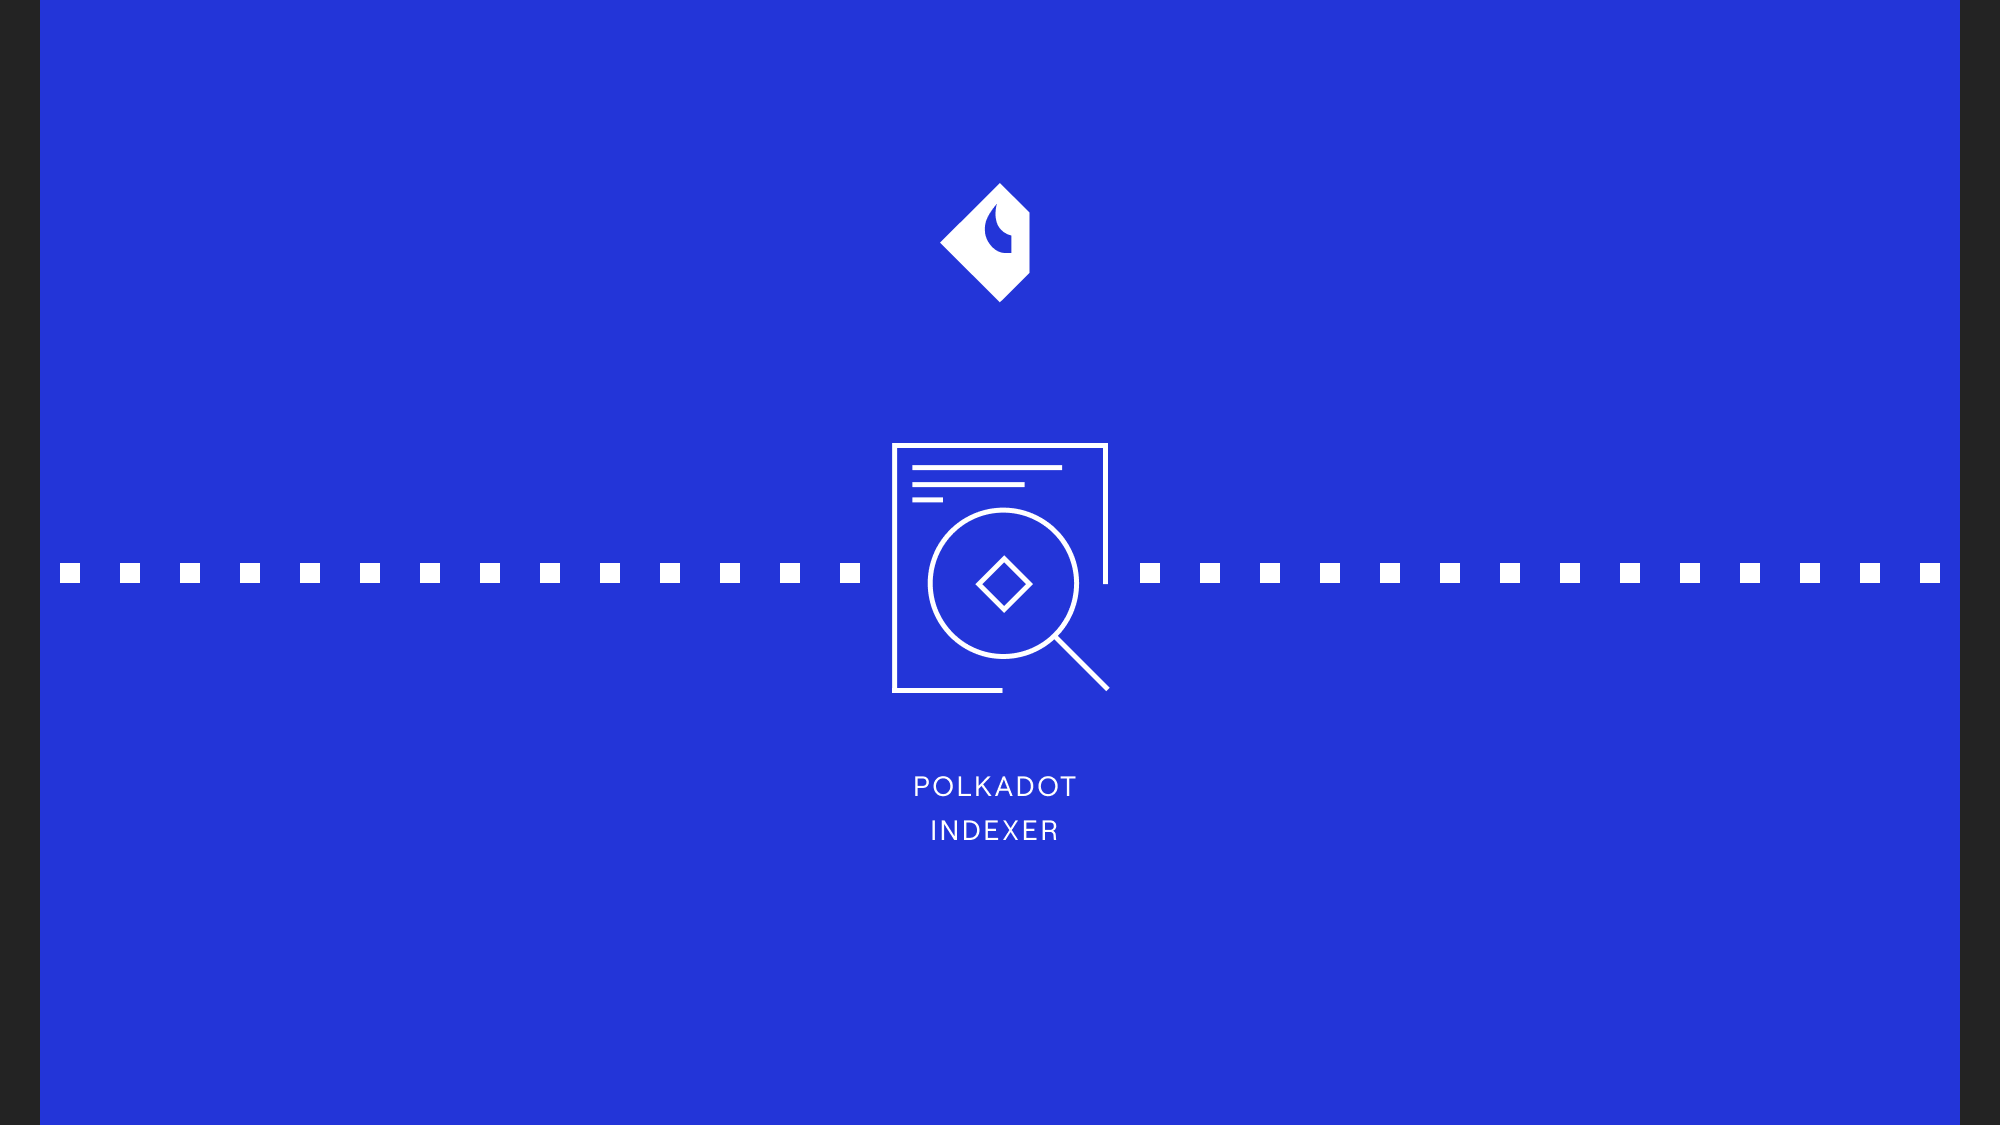 Announcing Polkadot Indexer, the easy way to optimize participation